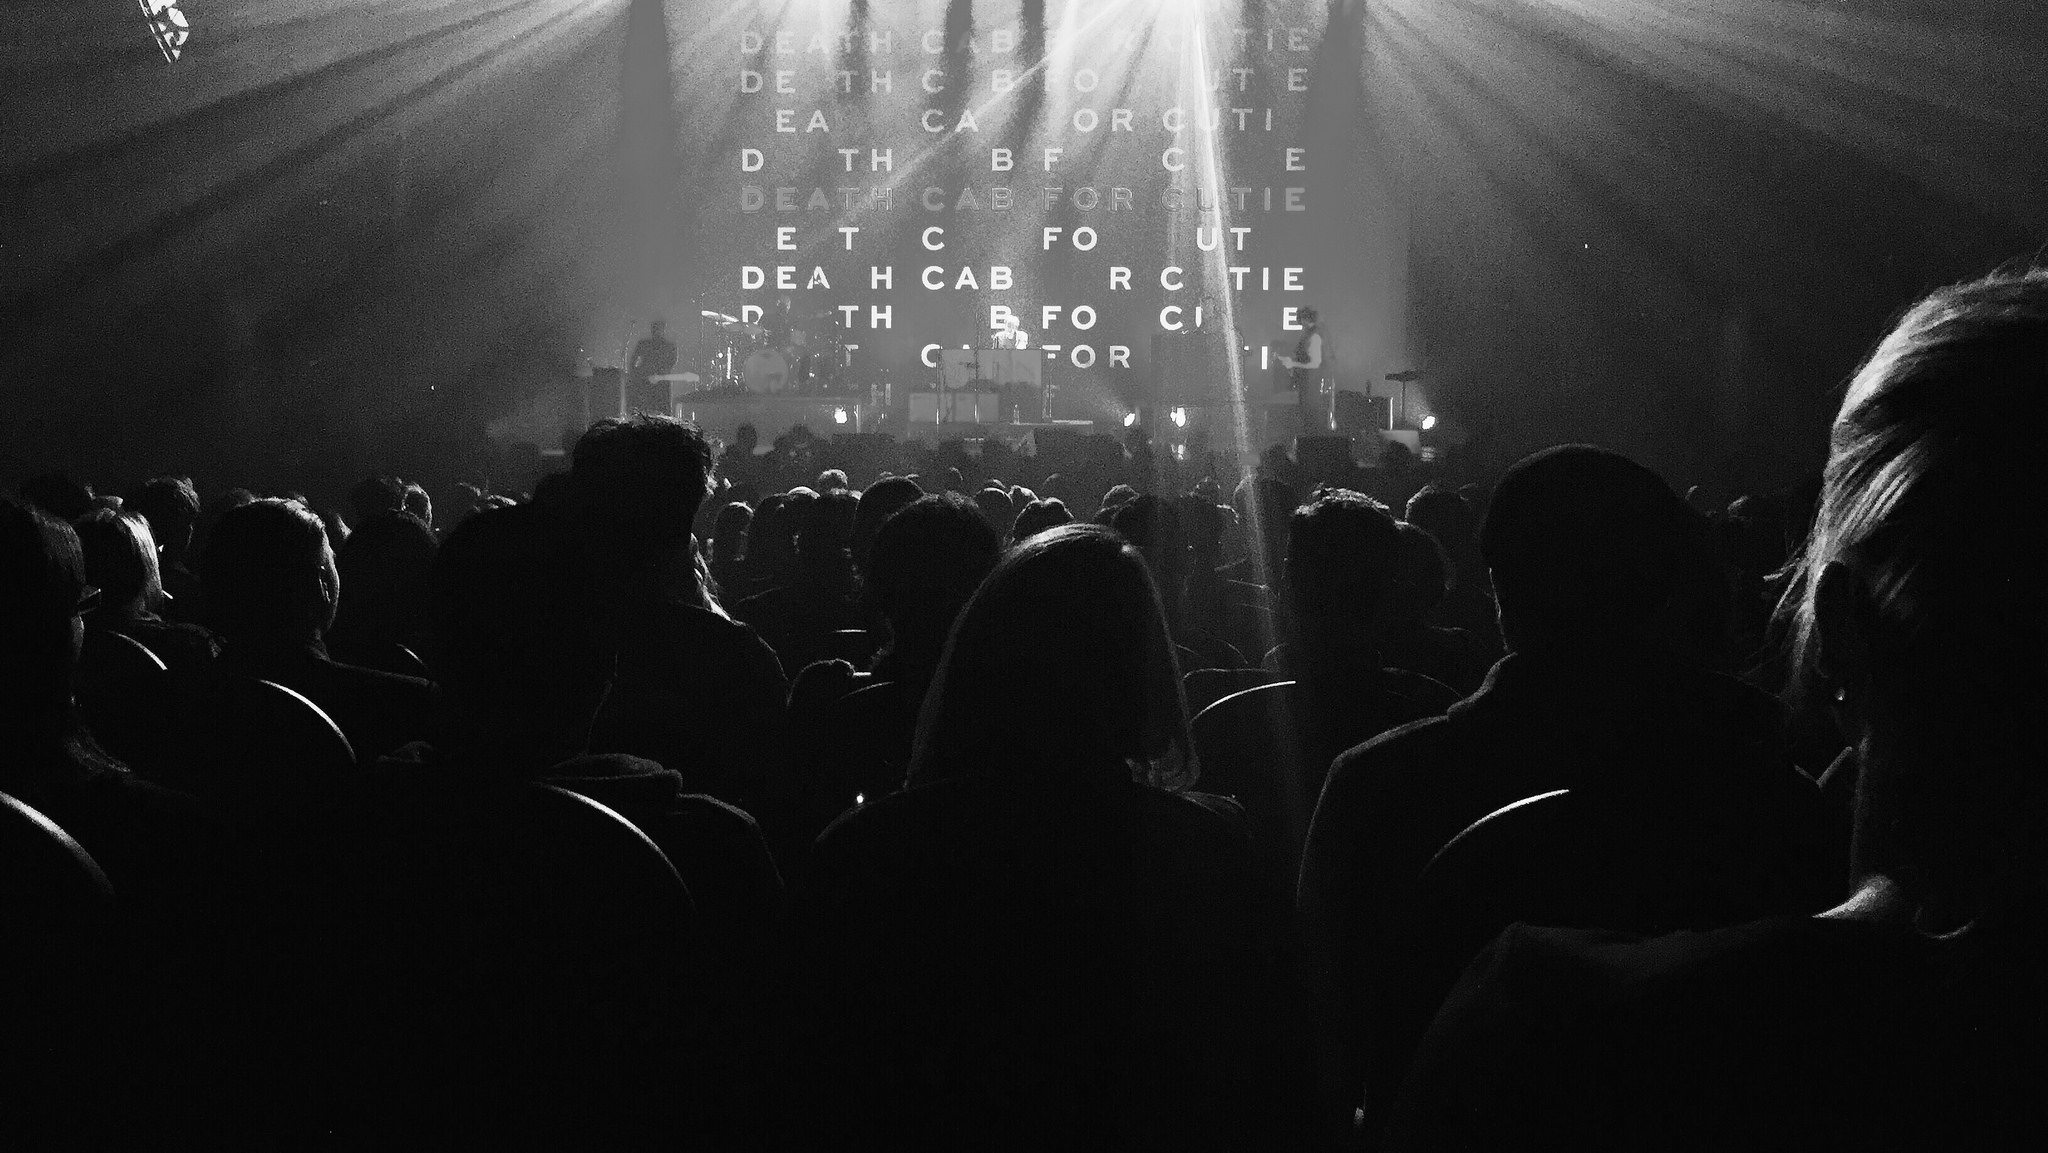 I took this audience shot at a recent Death Cab for Cutie and Metric concert I went to.(click image to enlarge)